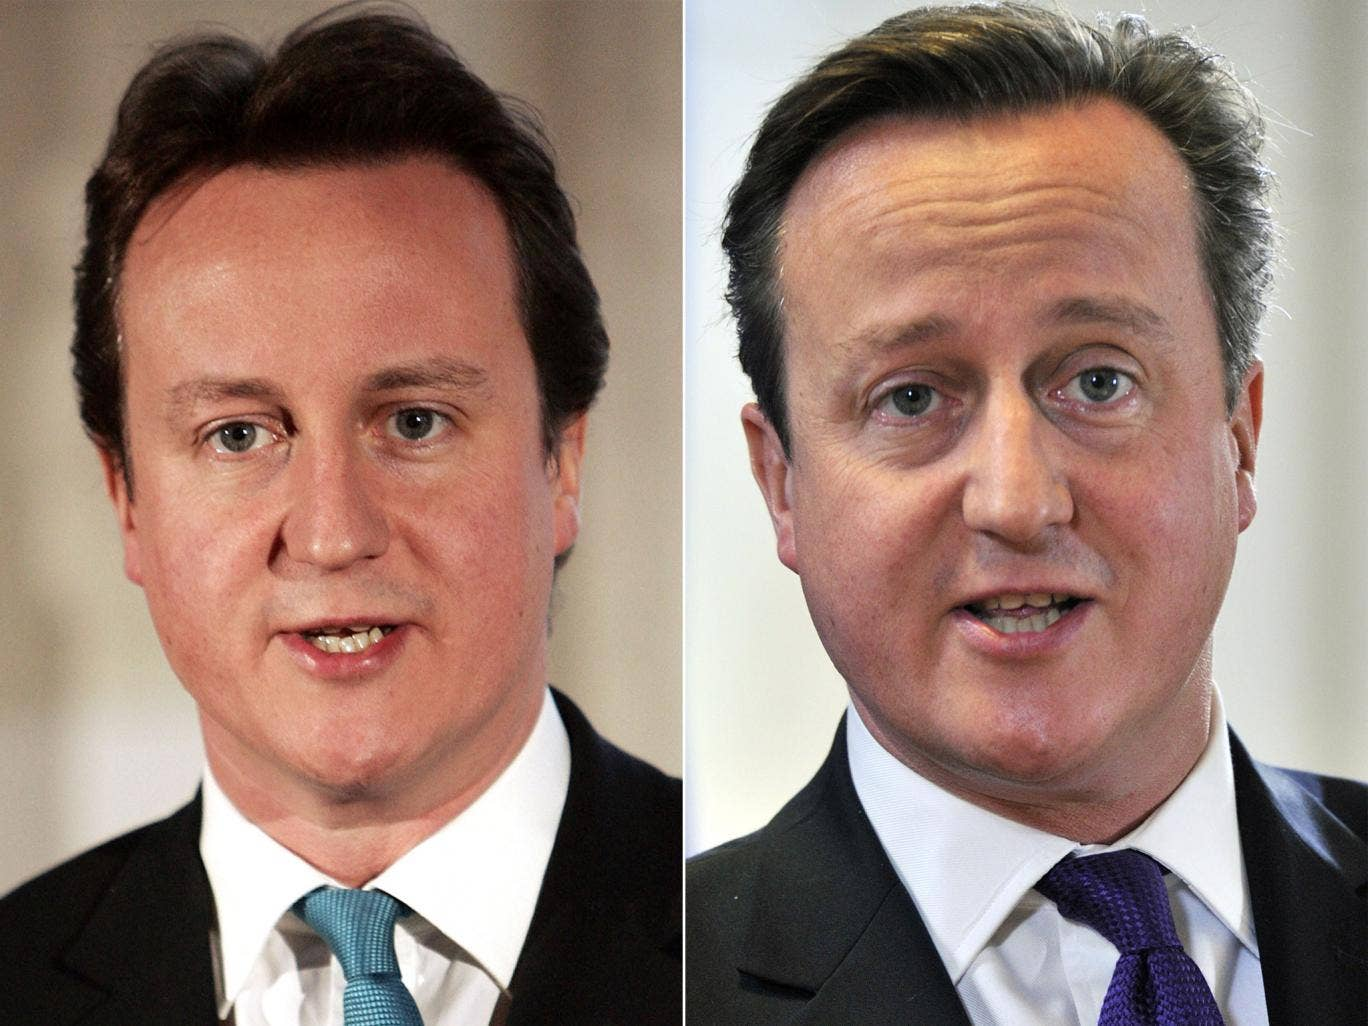 Hair today: David Cameron with a bouffant style (left) and his current cut